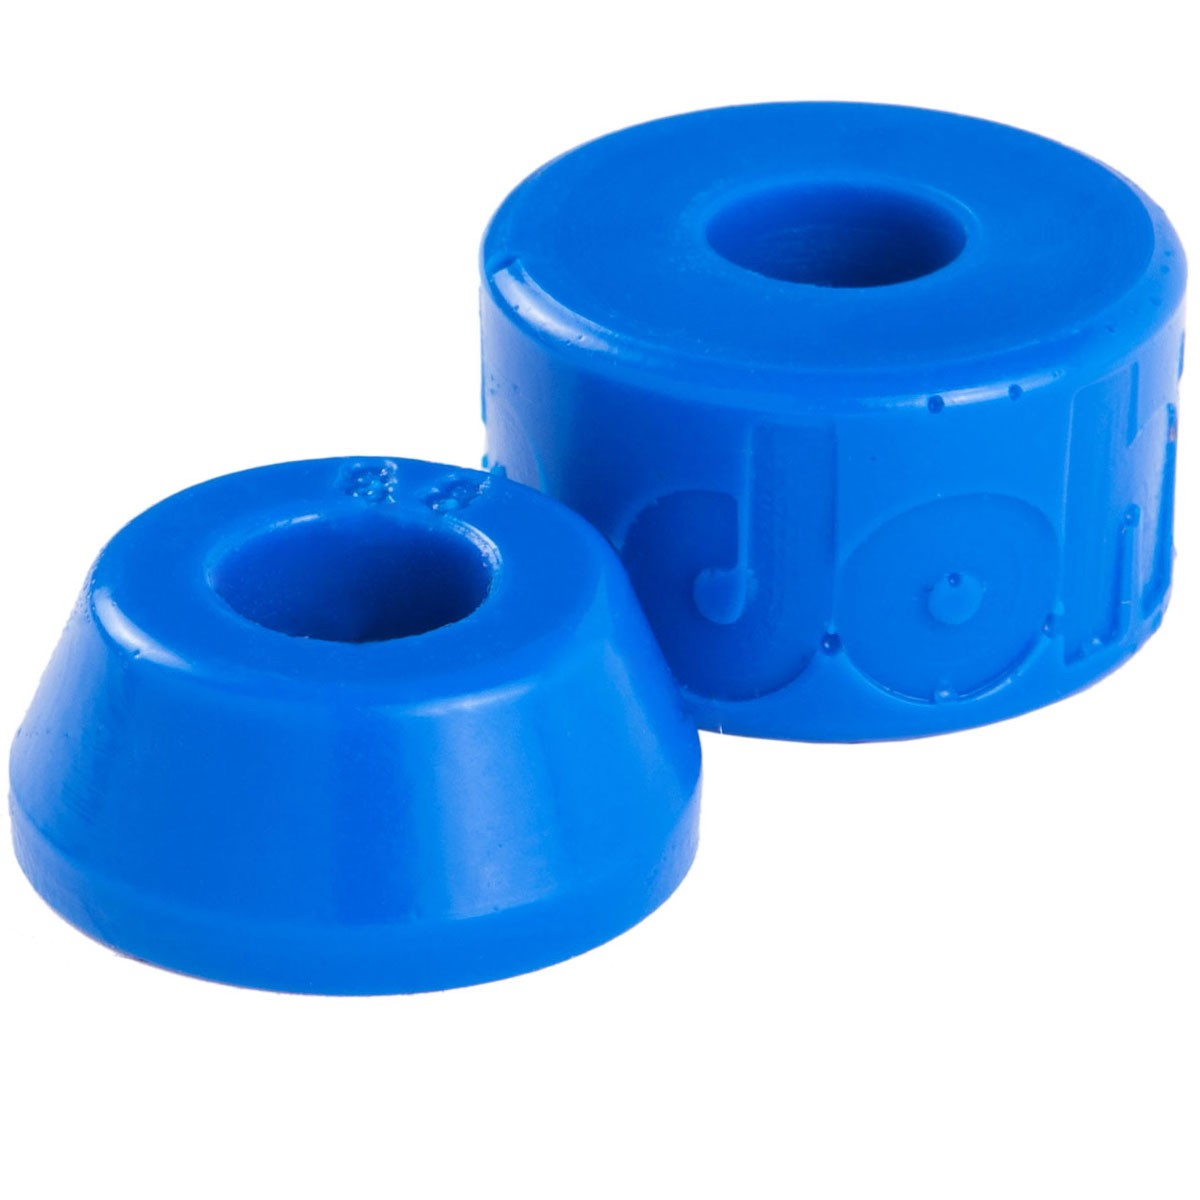 Shorty's Doh Doh Skateboard Bushings All Durometers